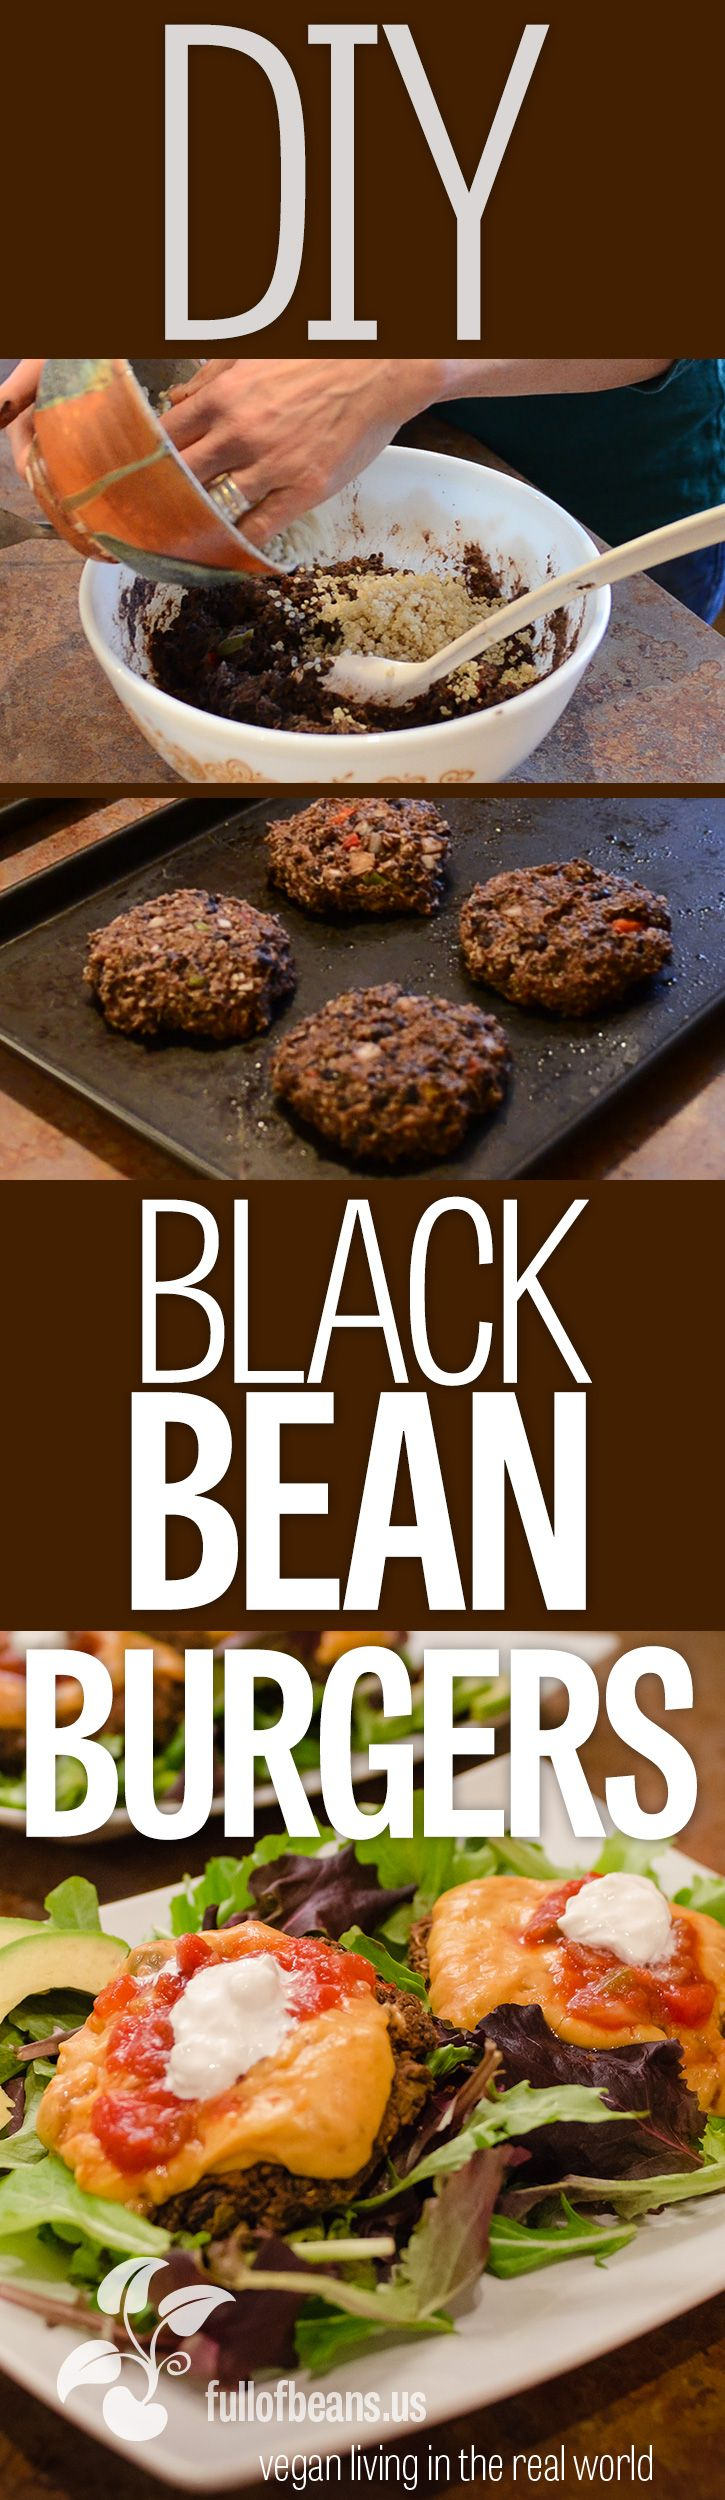 http://www.fullofbeans.us/black-bean-burgers-delicious-alternative/